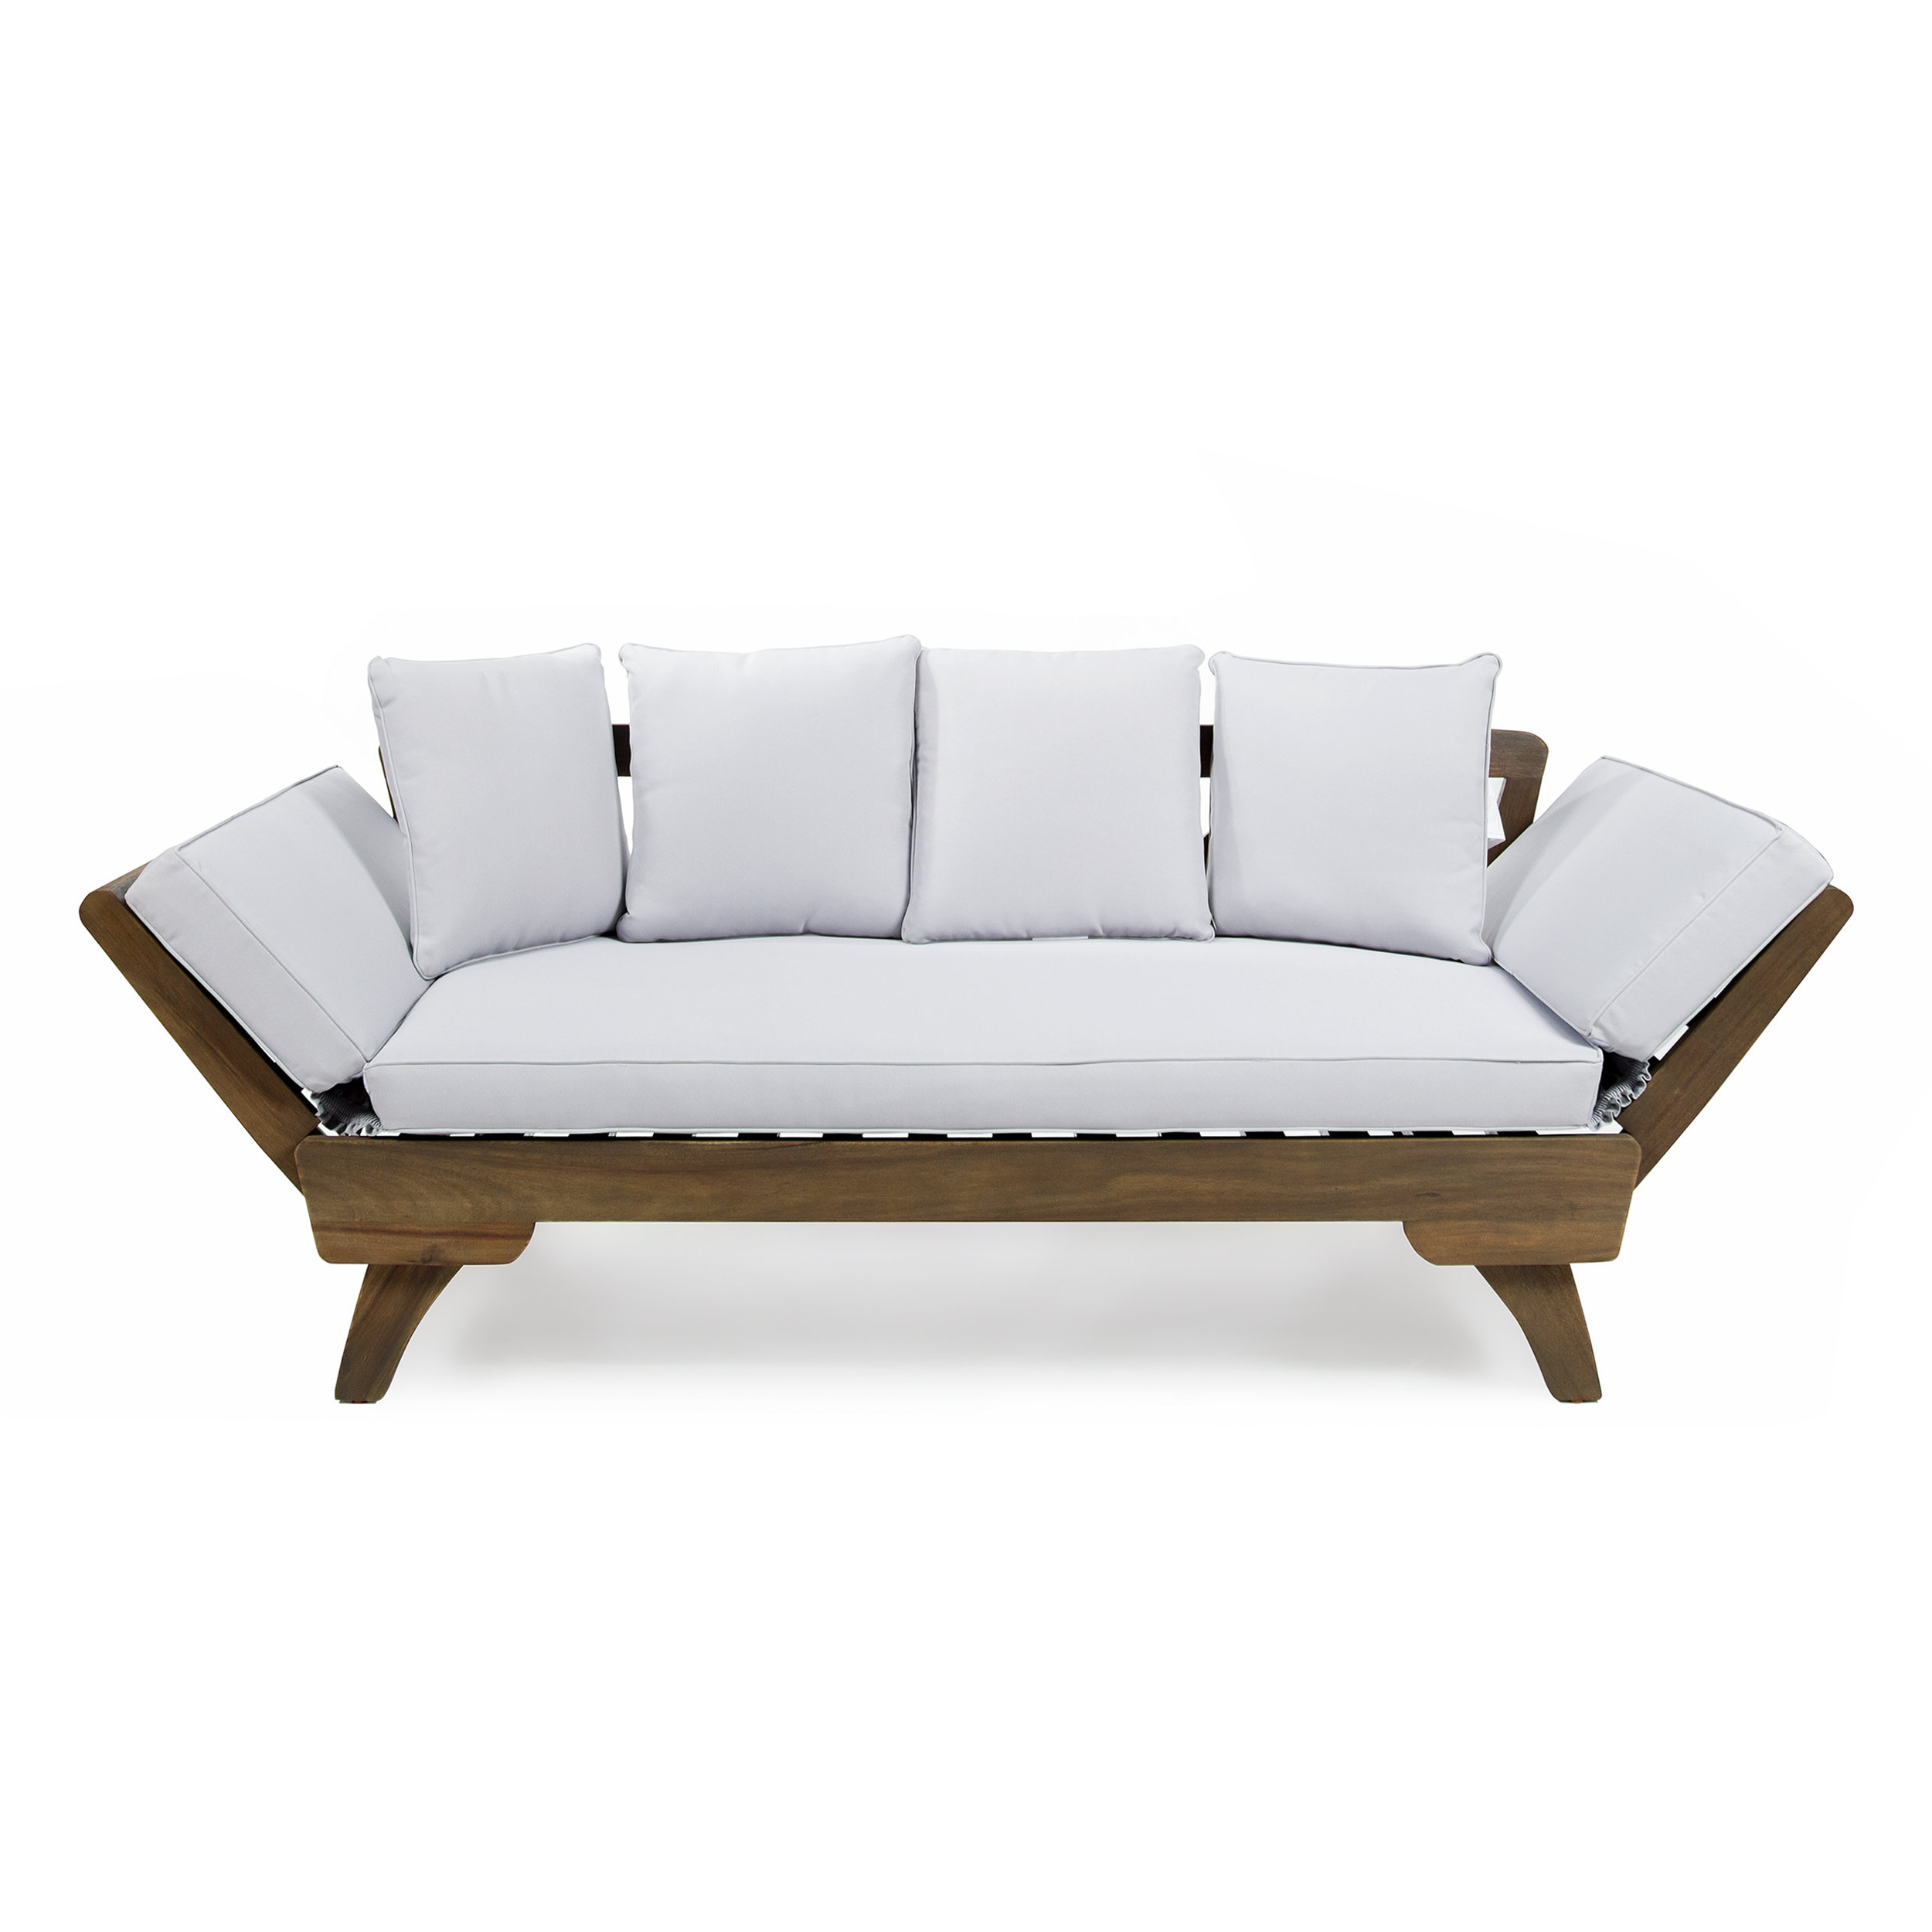 Preferred Ellanti Teak Patio Daybed With Cushions Throughout Beal Patio Daybeds With Cushions (Gallery 13 of 25)